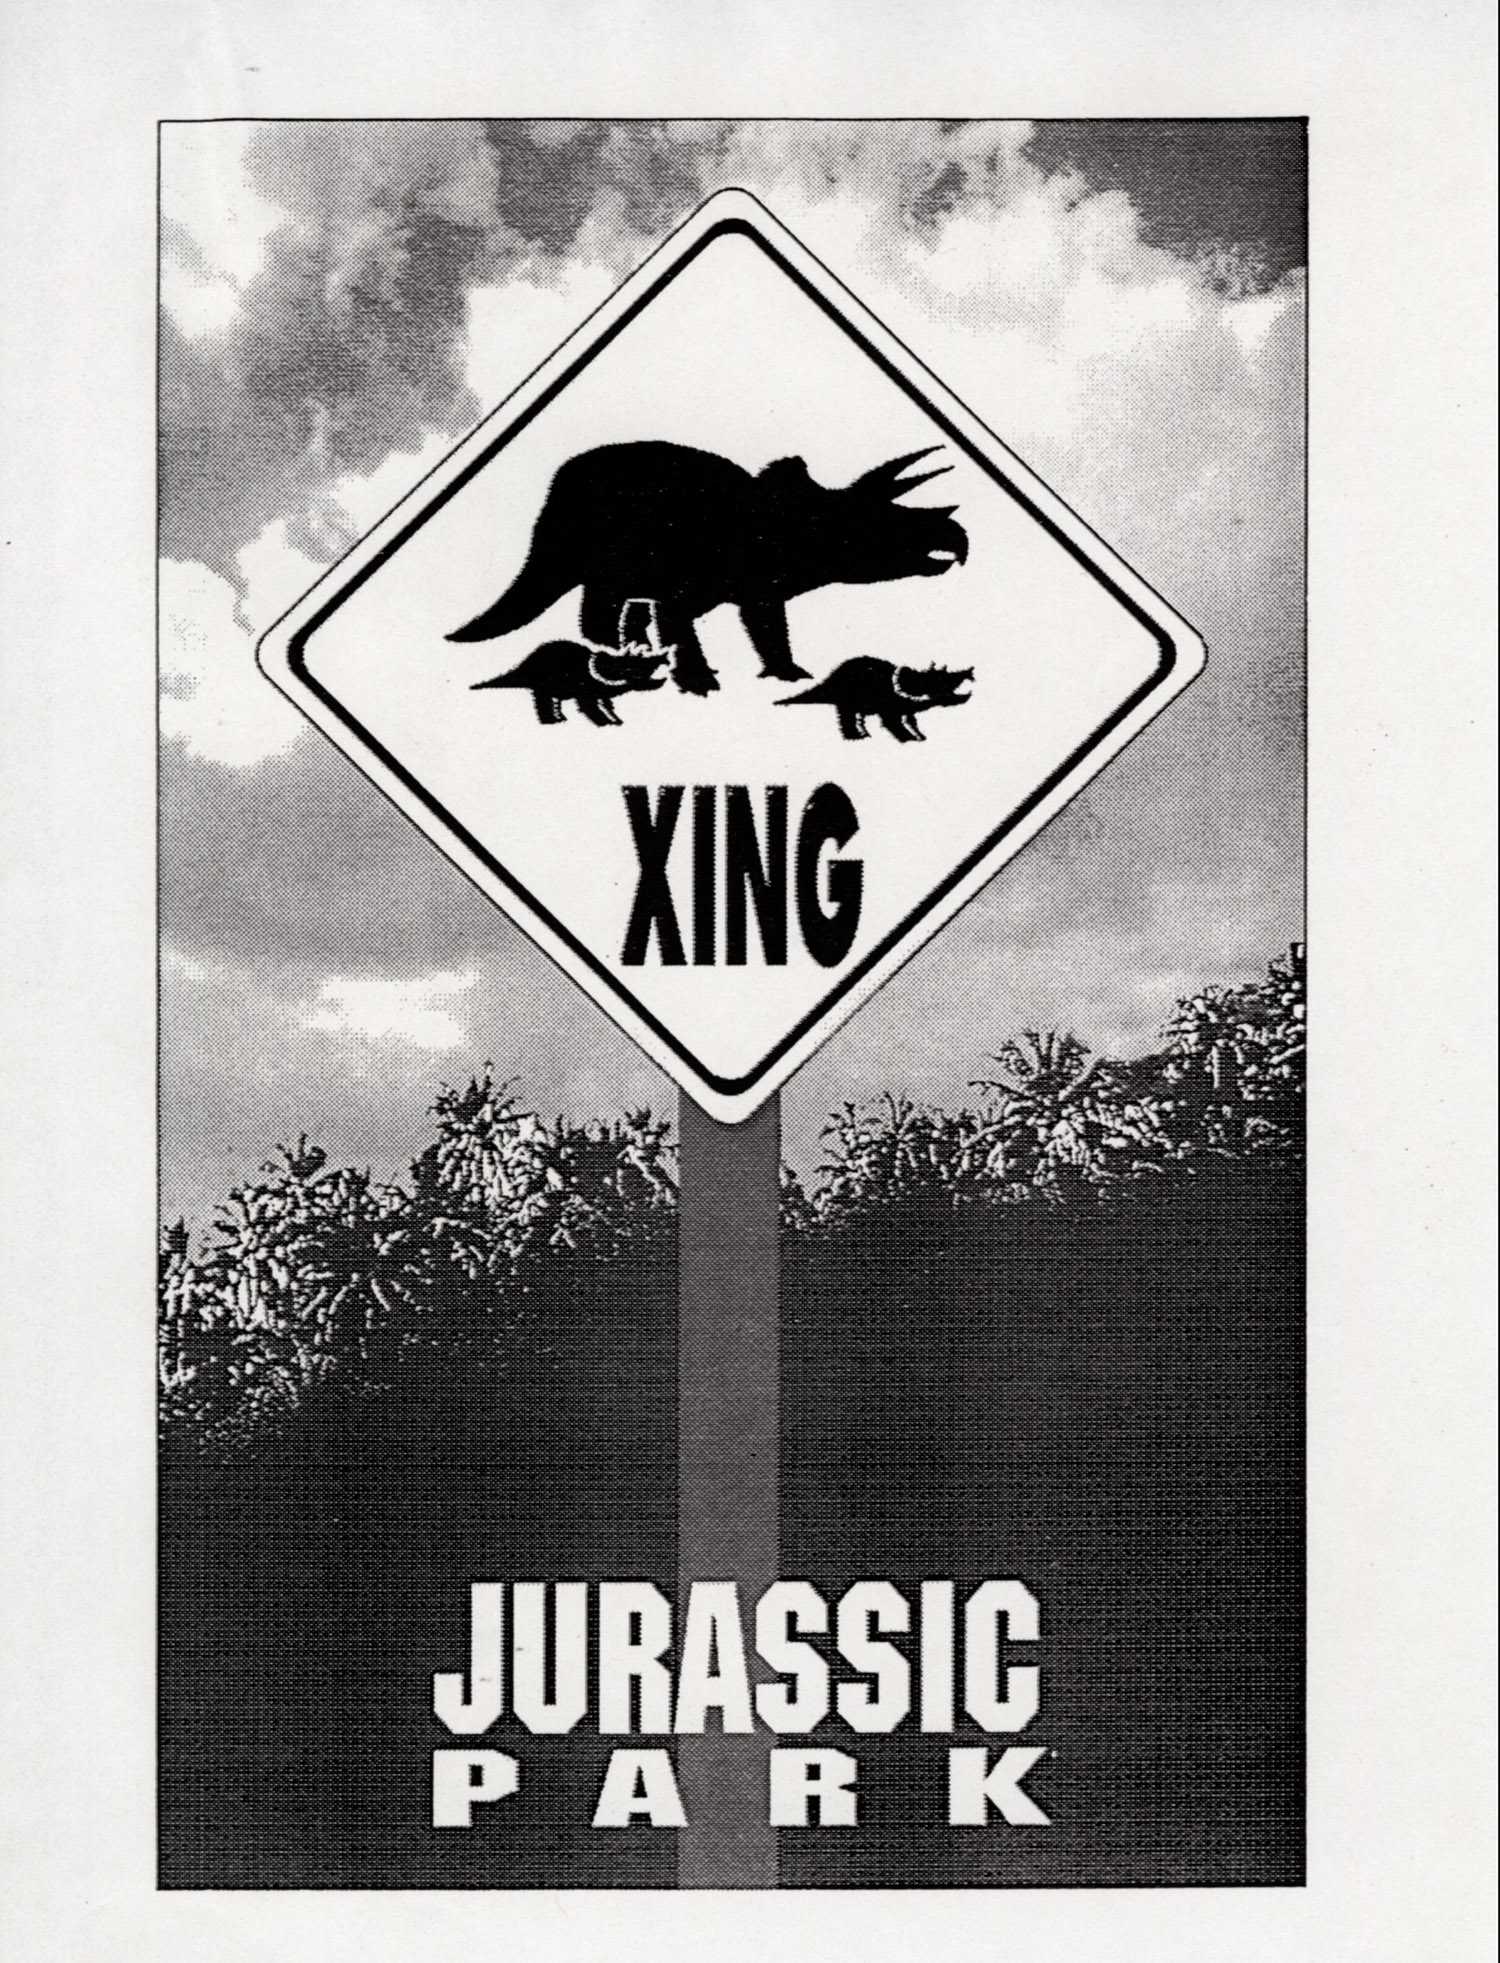 John Alvin   Jurassic Park poster   10 Exclusive: Over a Dozen Never Before Seen Jurassic Park Posters From Famous Artist John Alvin